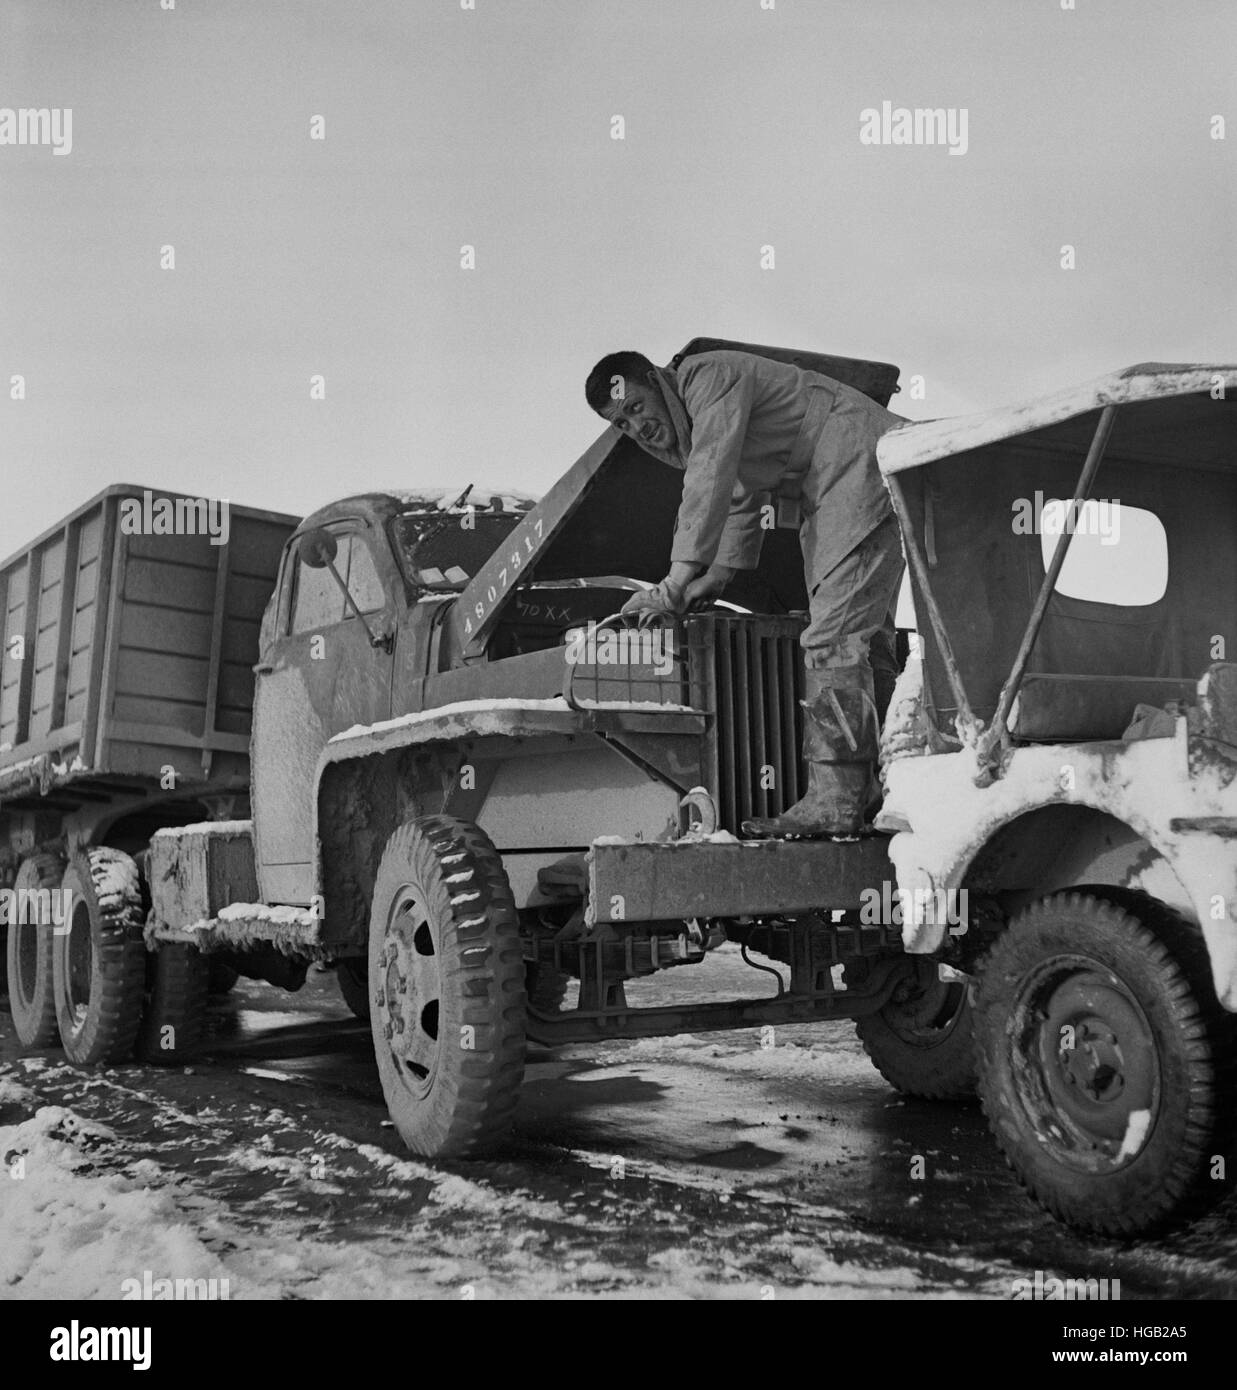 A truck driver with the U.S. Army checking the oil. - Stock Image